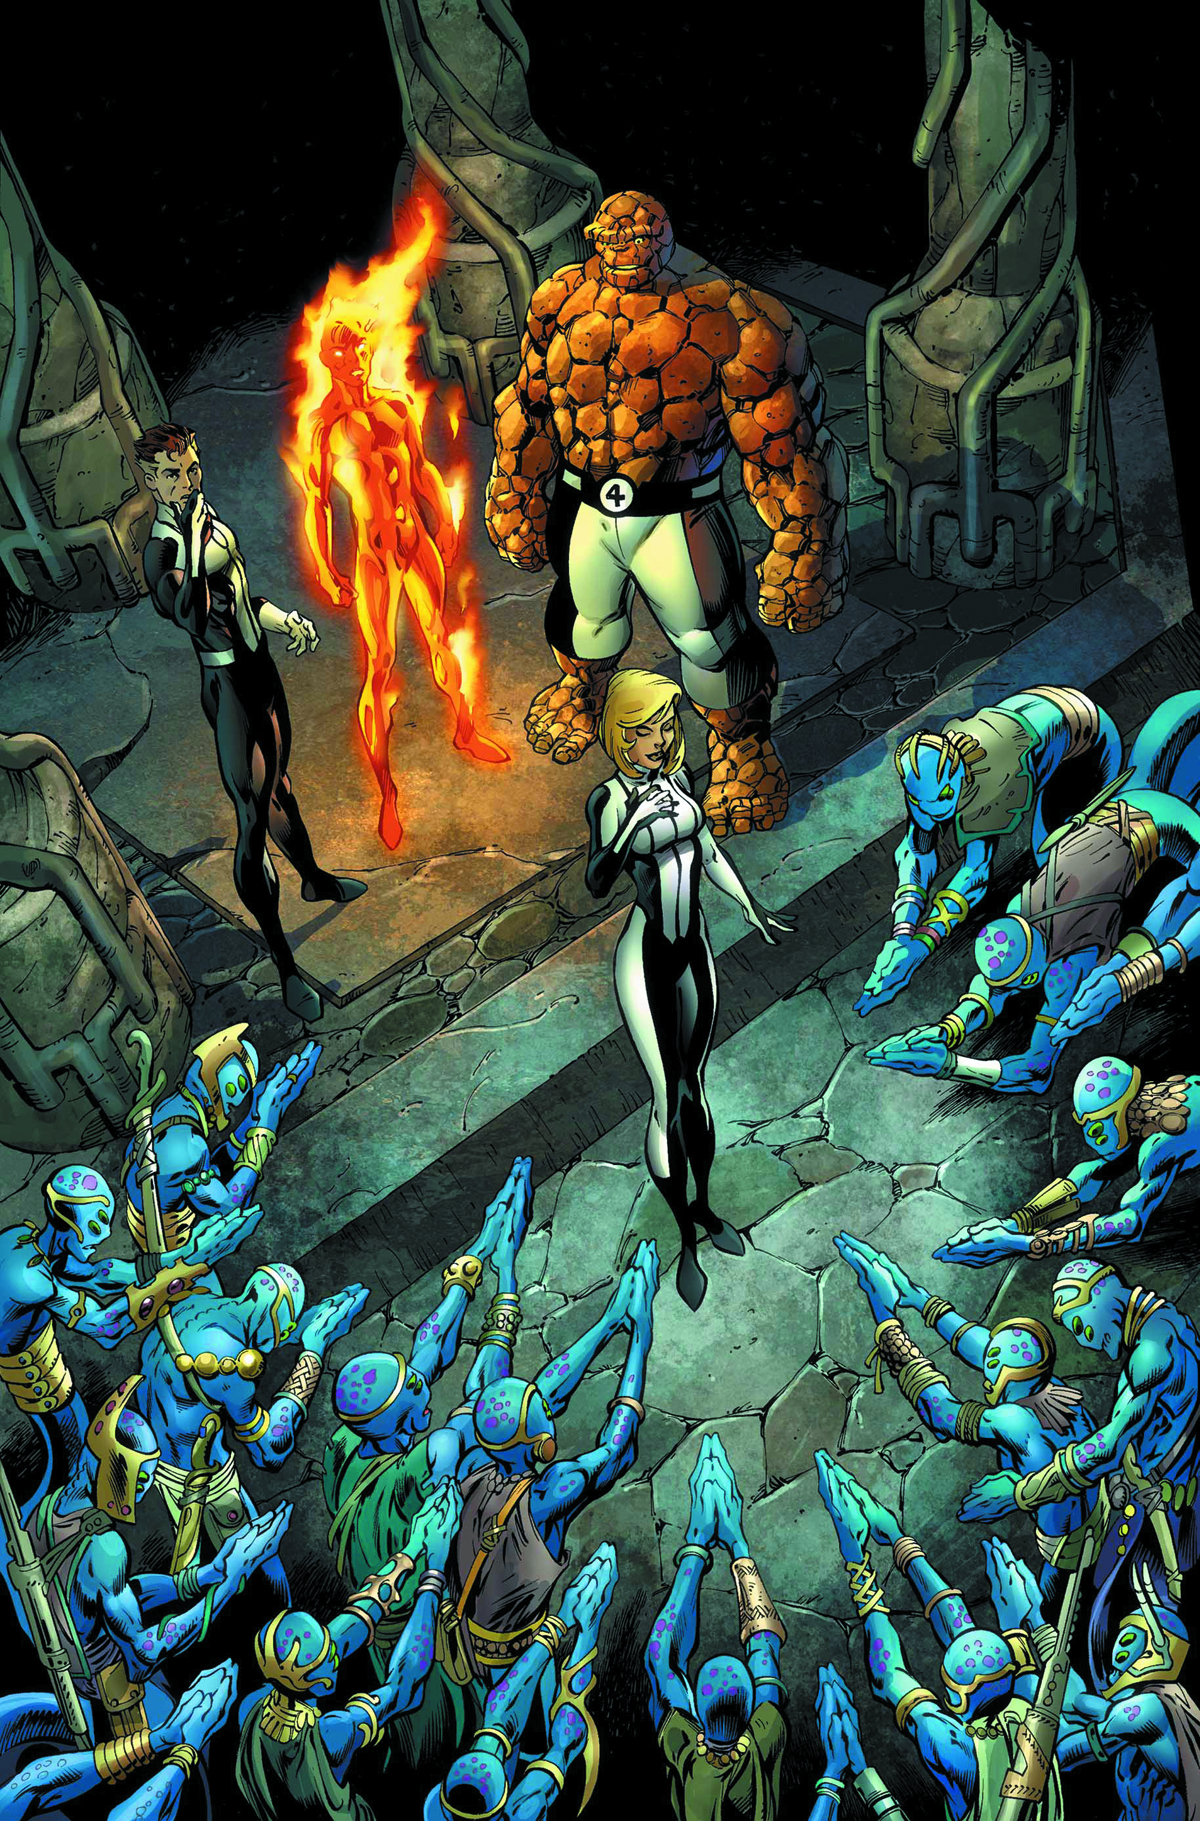 FANTASTIC FOUR #4 NOW